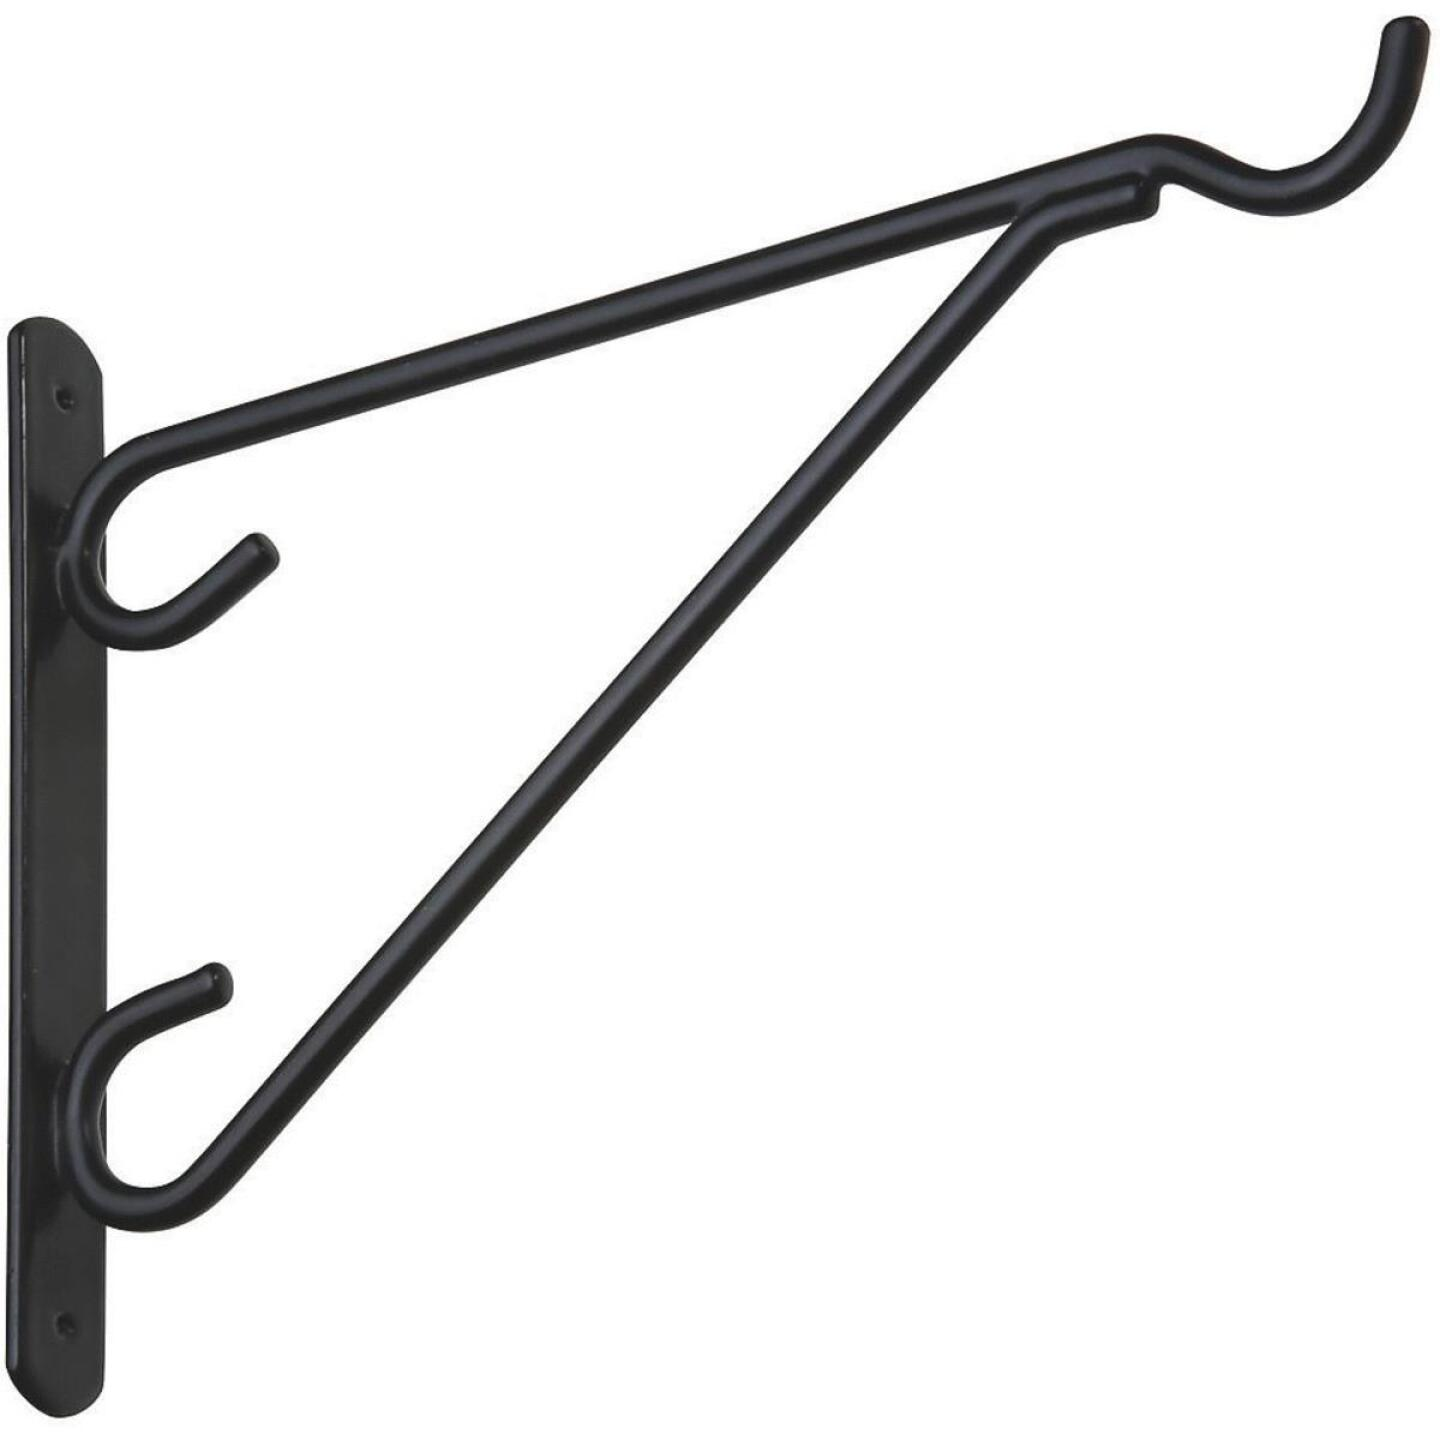 National 12 In. Black Vinyl-Coated Steel Plant Hanger Bracket Image 1